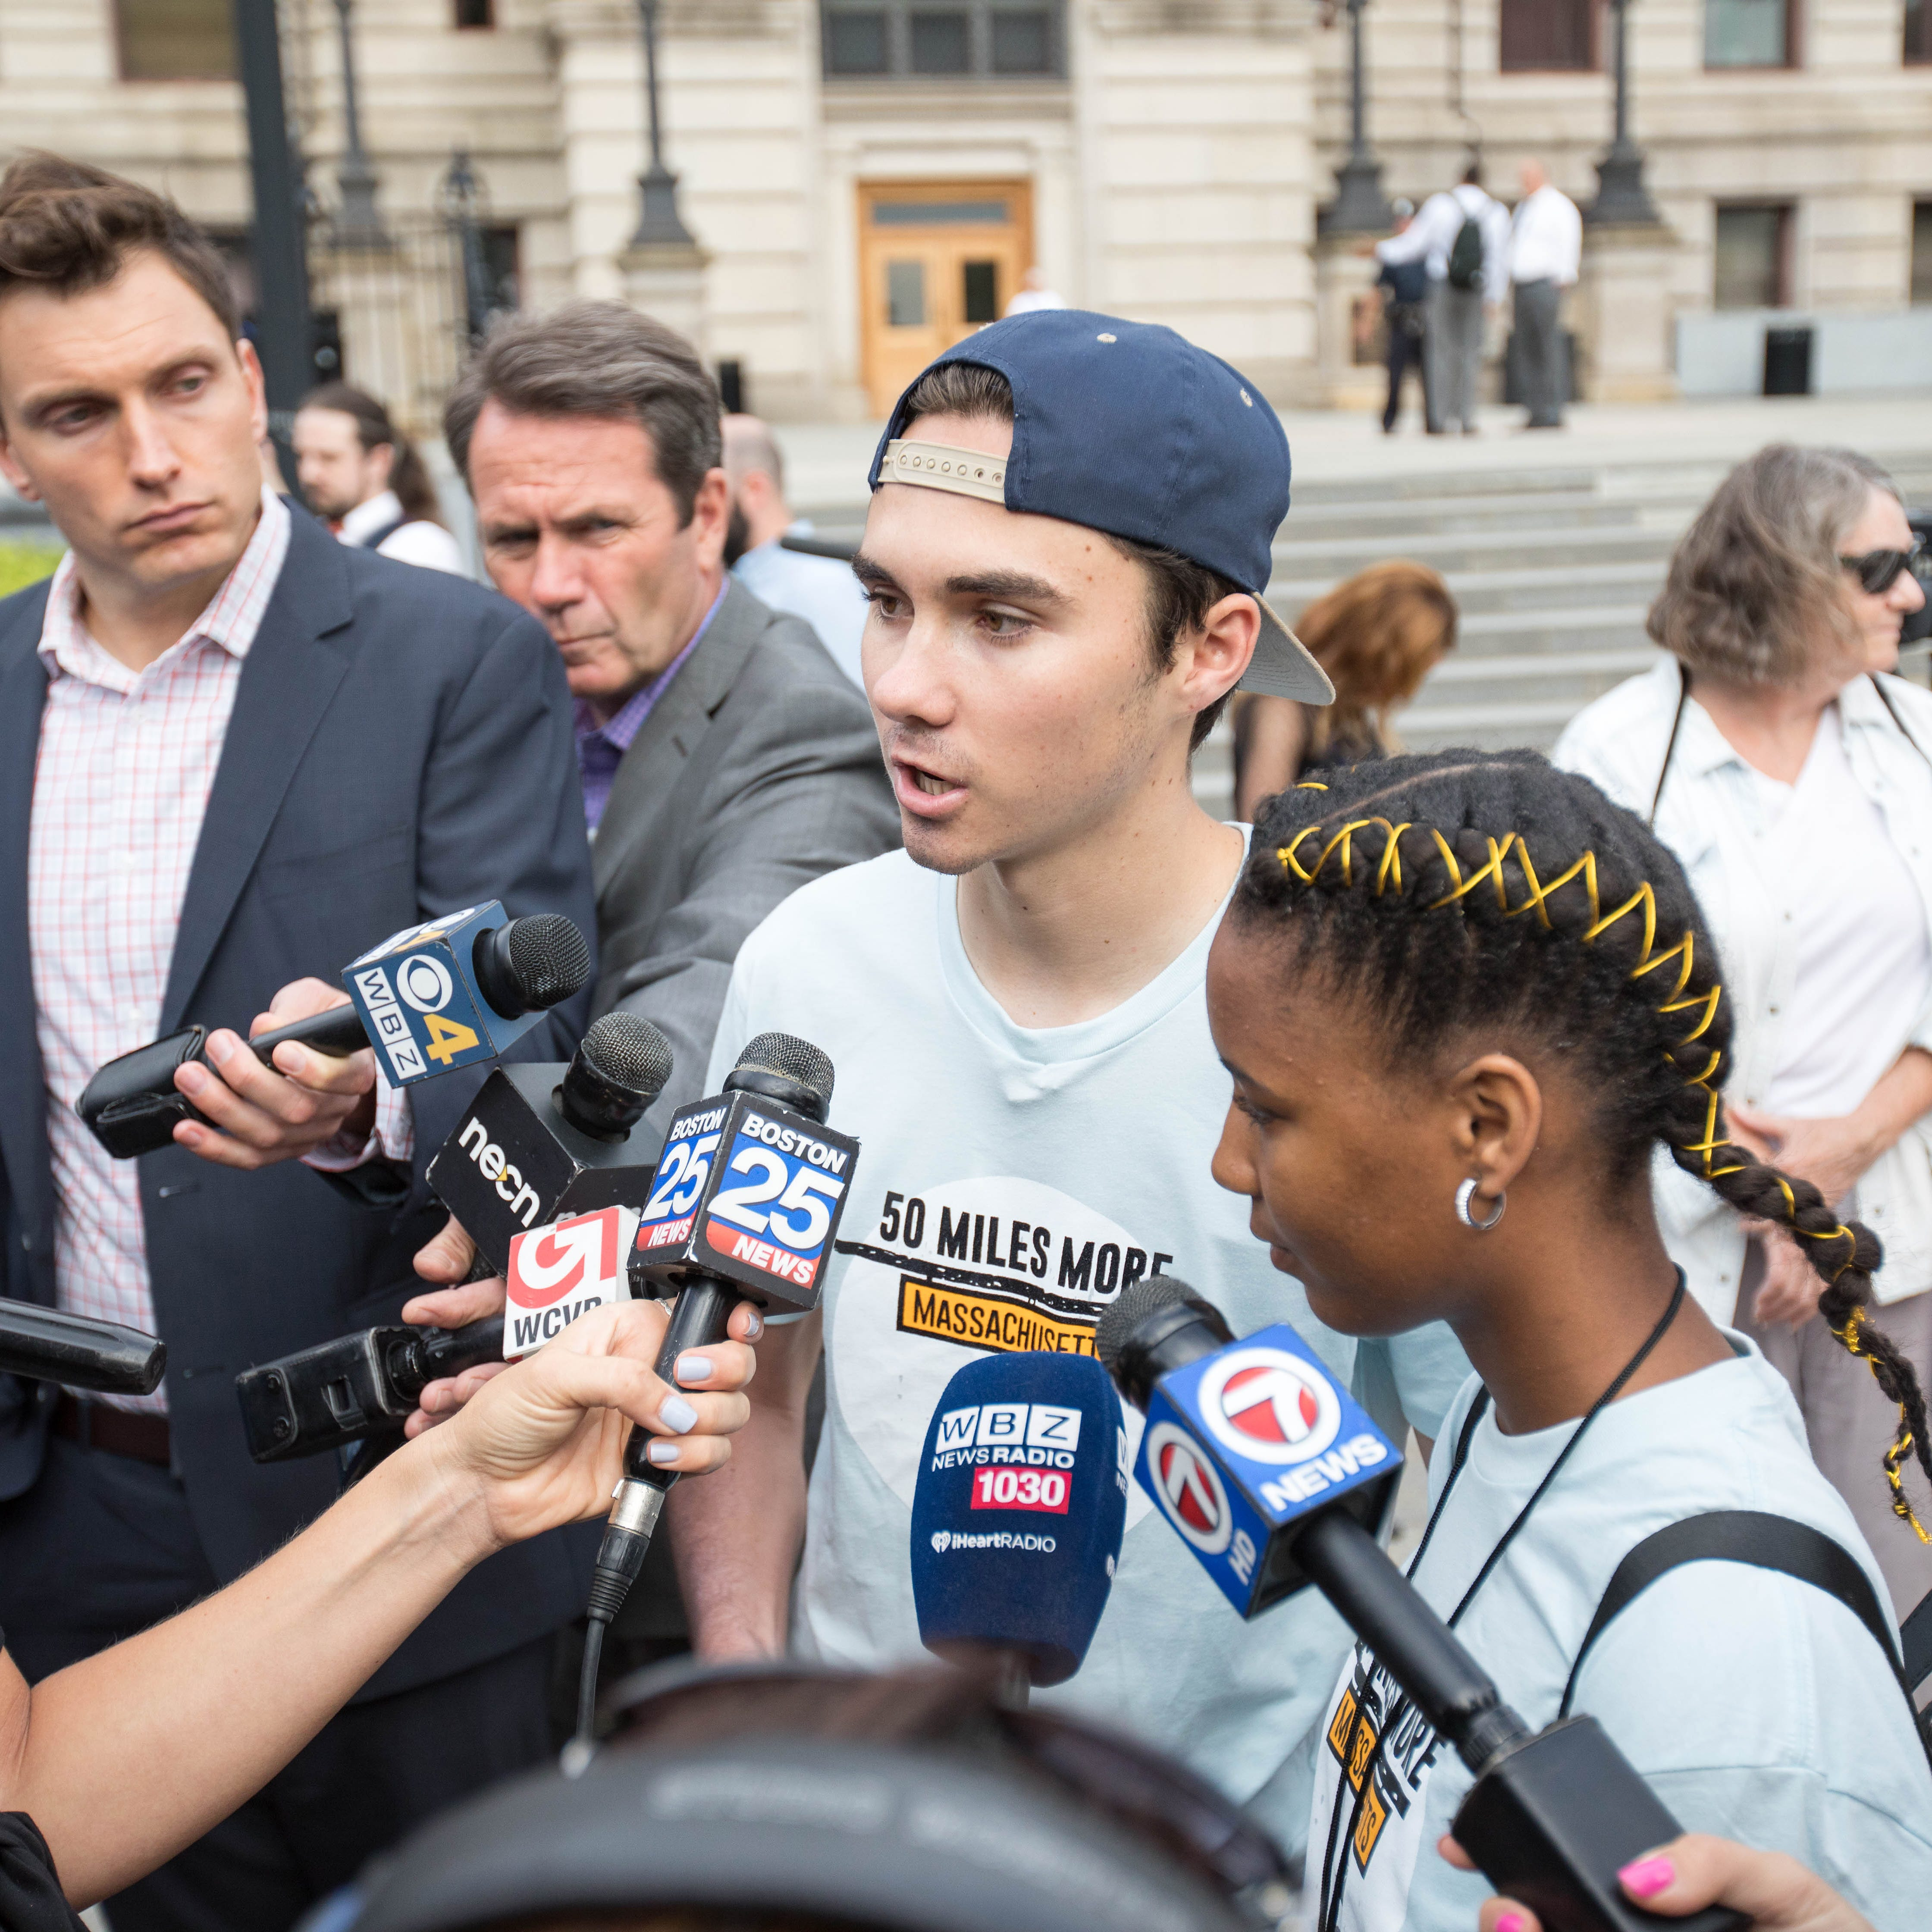 David Hogg, Parkland shooting survivor and activist givess an interview before the kick off of the 50 Miles More walk against gun violence which will end with a protest at the Smith and Wesson Firearms factory on Aug. 23, 2018 in Worcester, Mass.